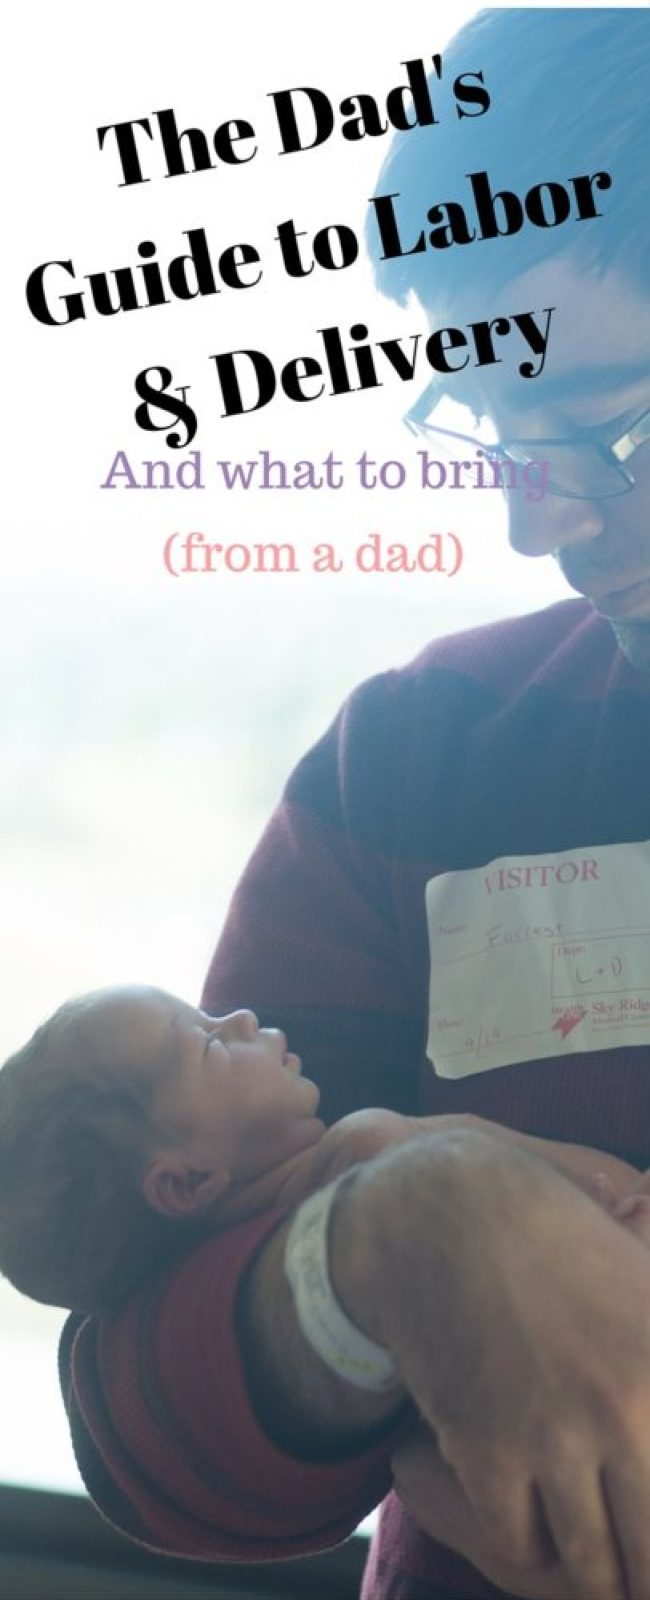 What Dad's Should Bring to the Hospital (5)